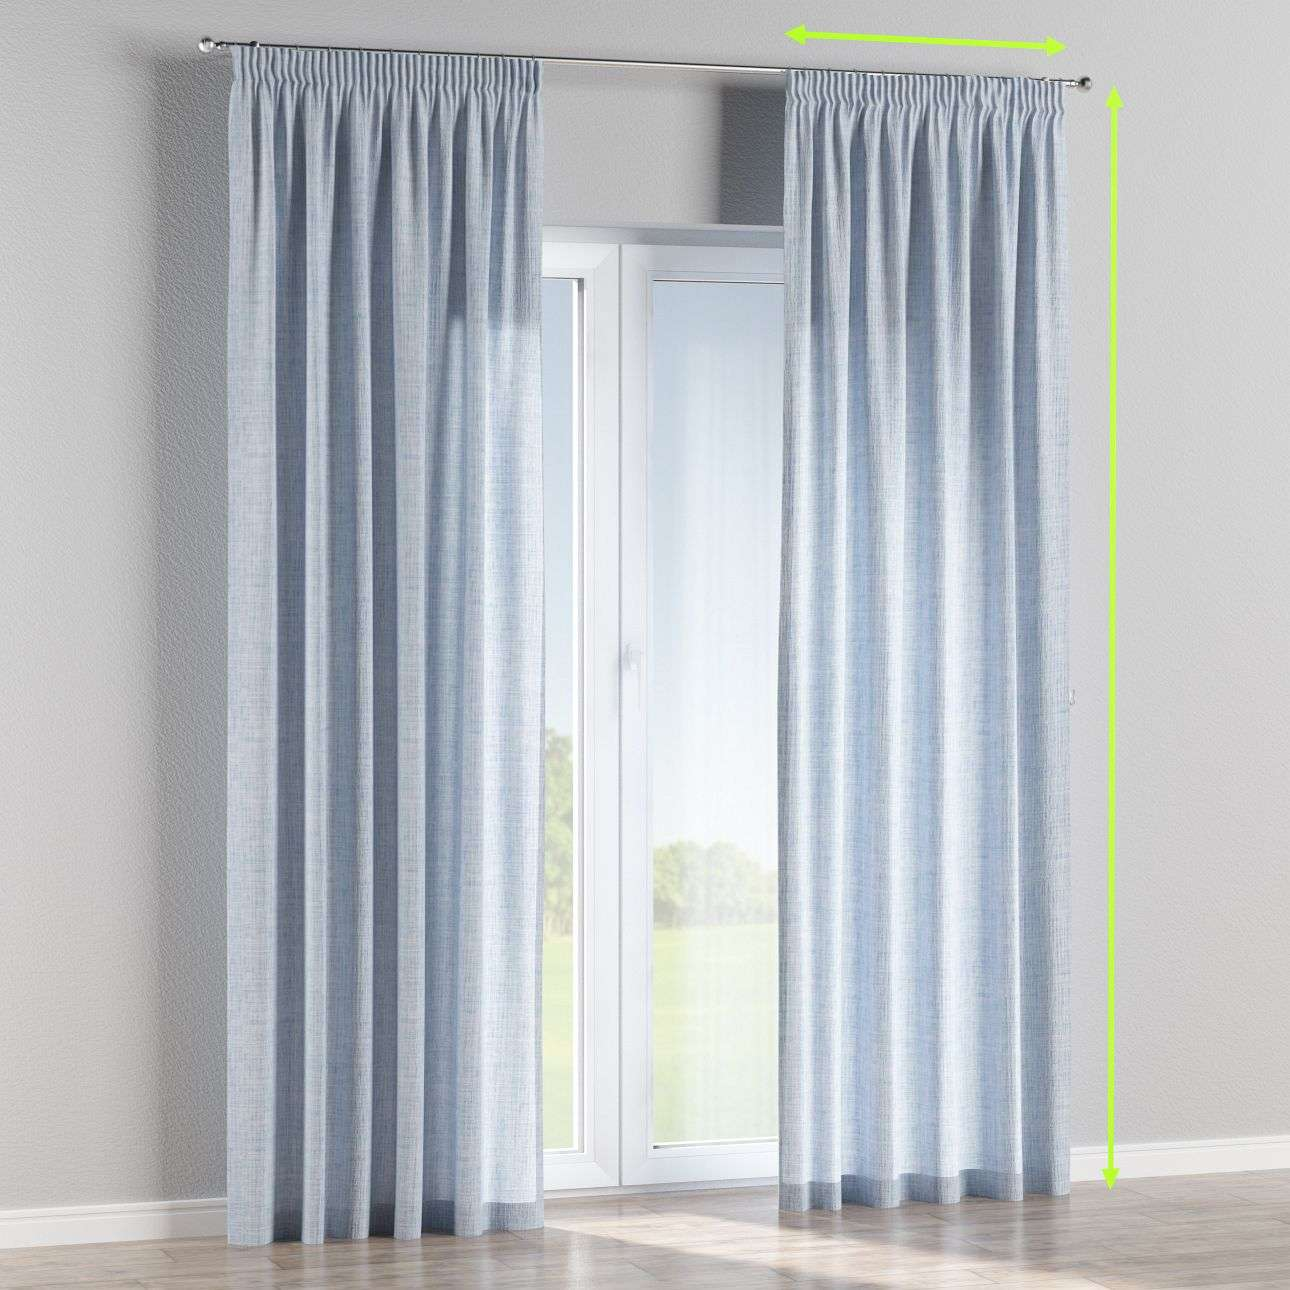 Pencil pleat lined curtains in collection Aquarelle, fabric: 140-74